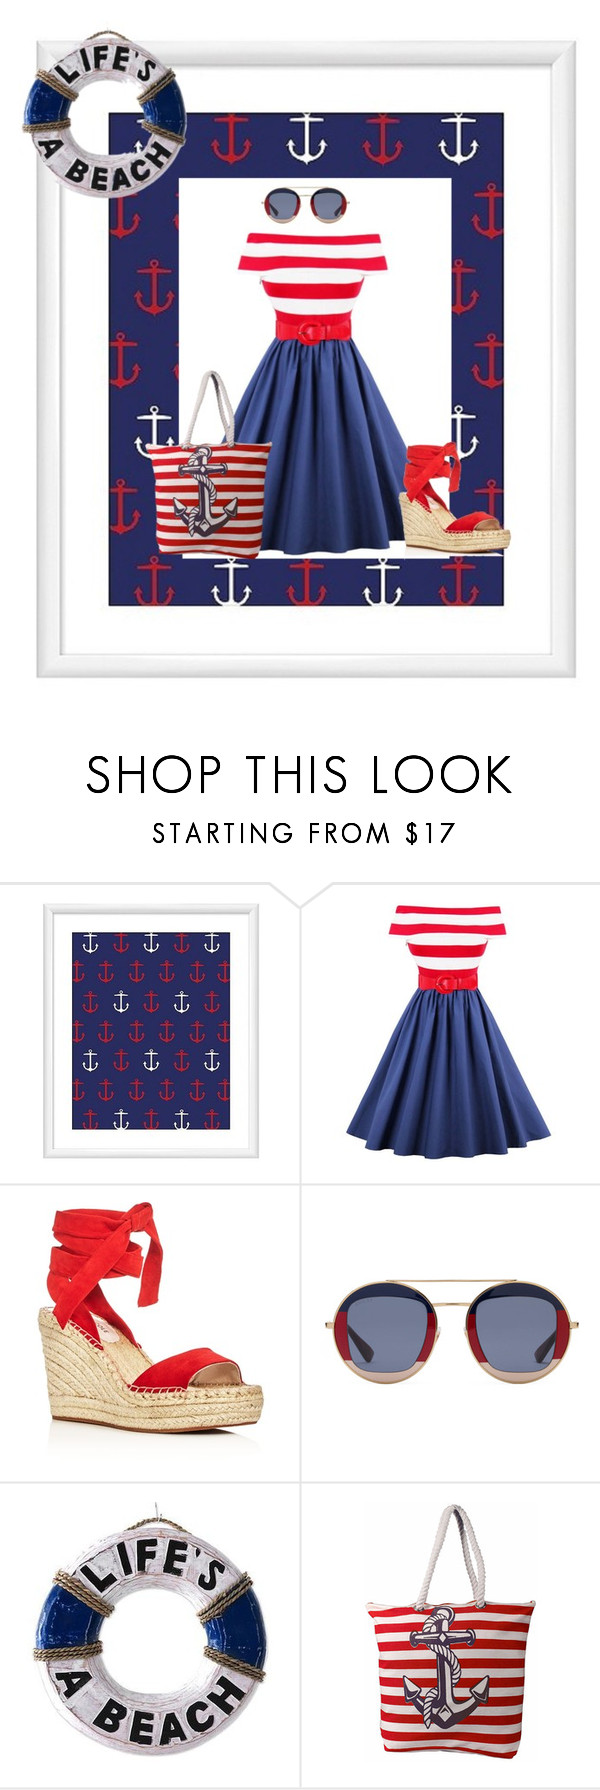 """""""Nautical Style I"""" by kaytekix ❤ liked on Polyvore featuring PTM Images, Kenneth Cole, Gucci, NOVICA, Peach Couture and Nautical"""